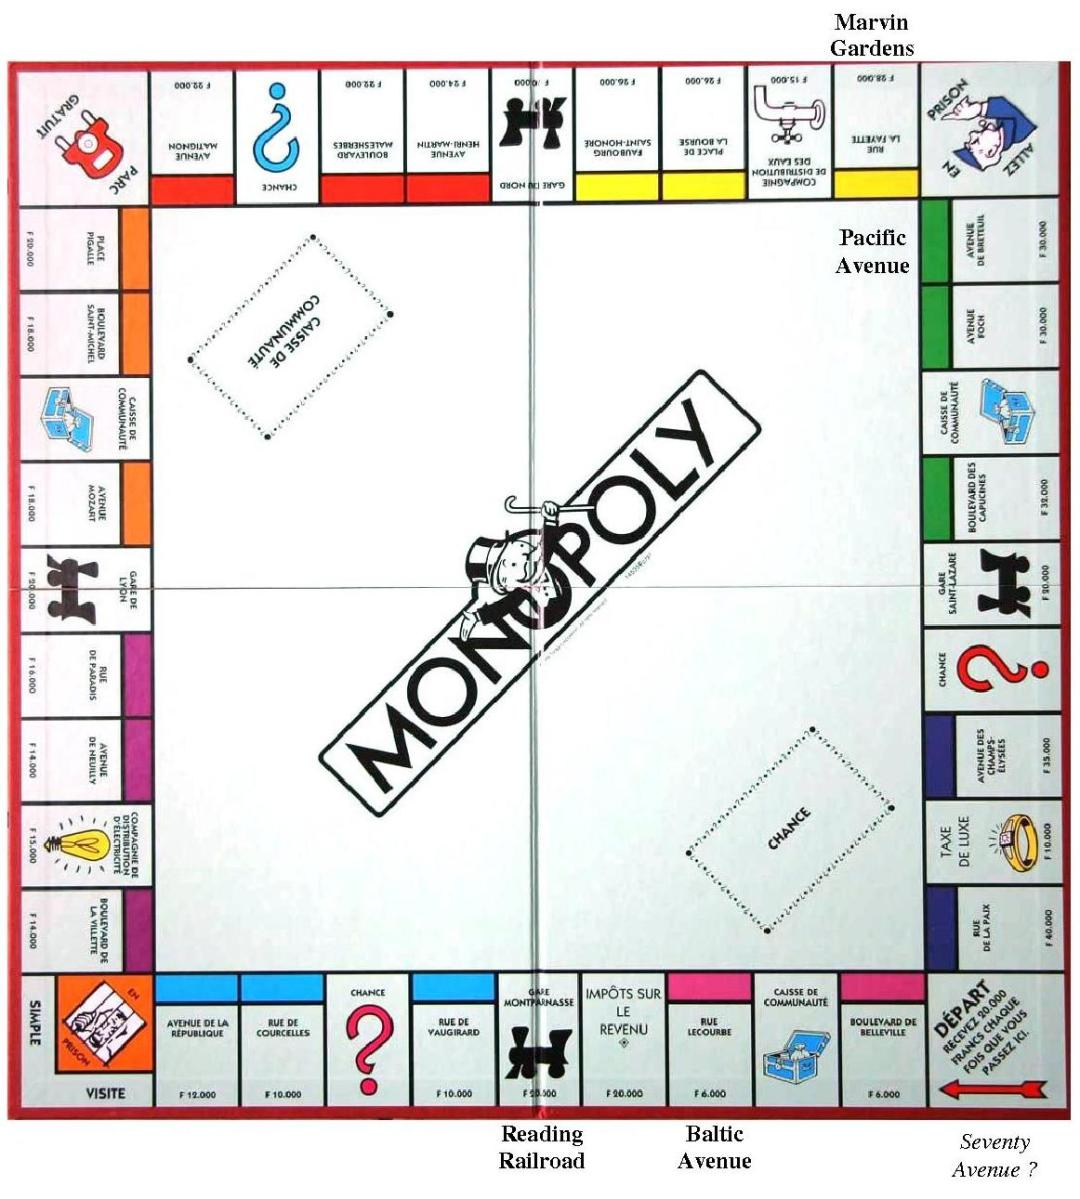 Ma technique quasi-infaillible au Monopoly